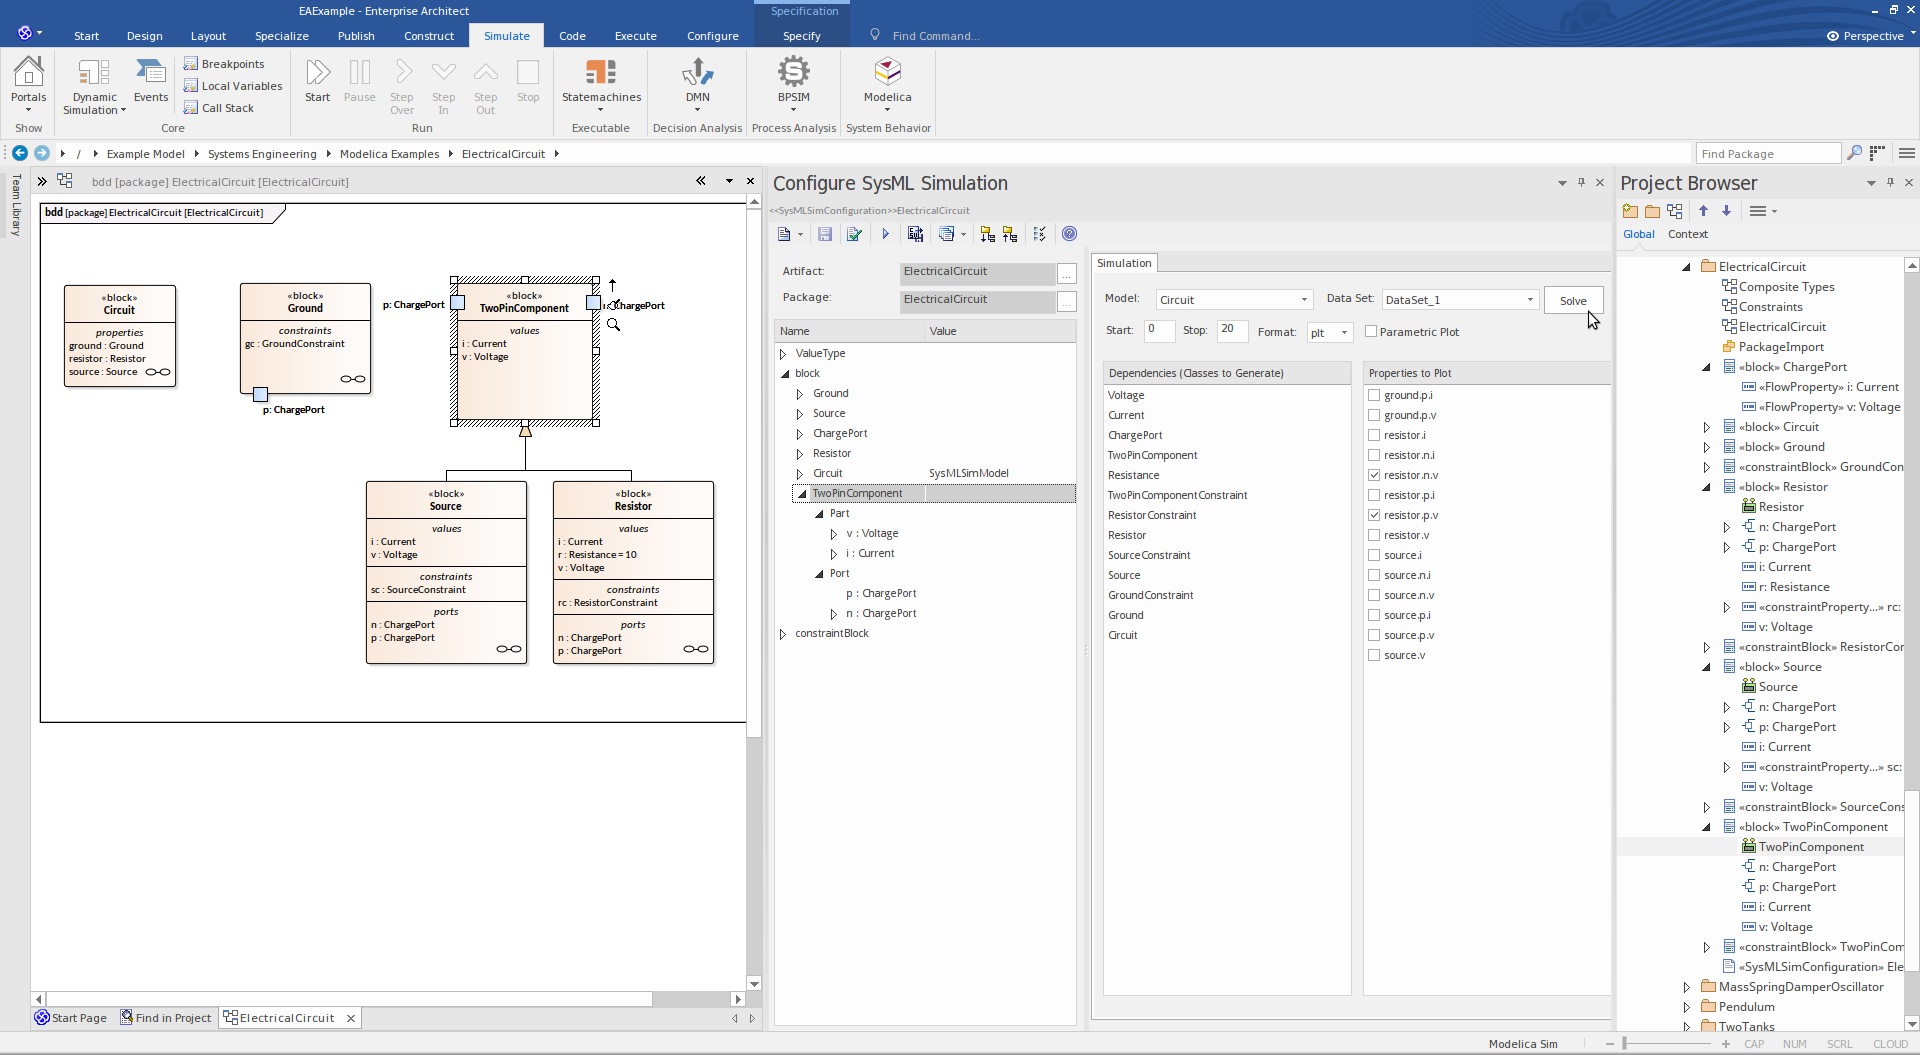 Enterprise Architect Unified Edition: Modelica Simulation